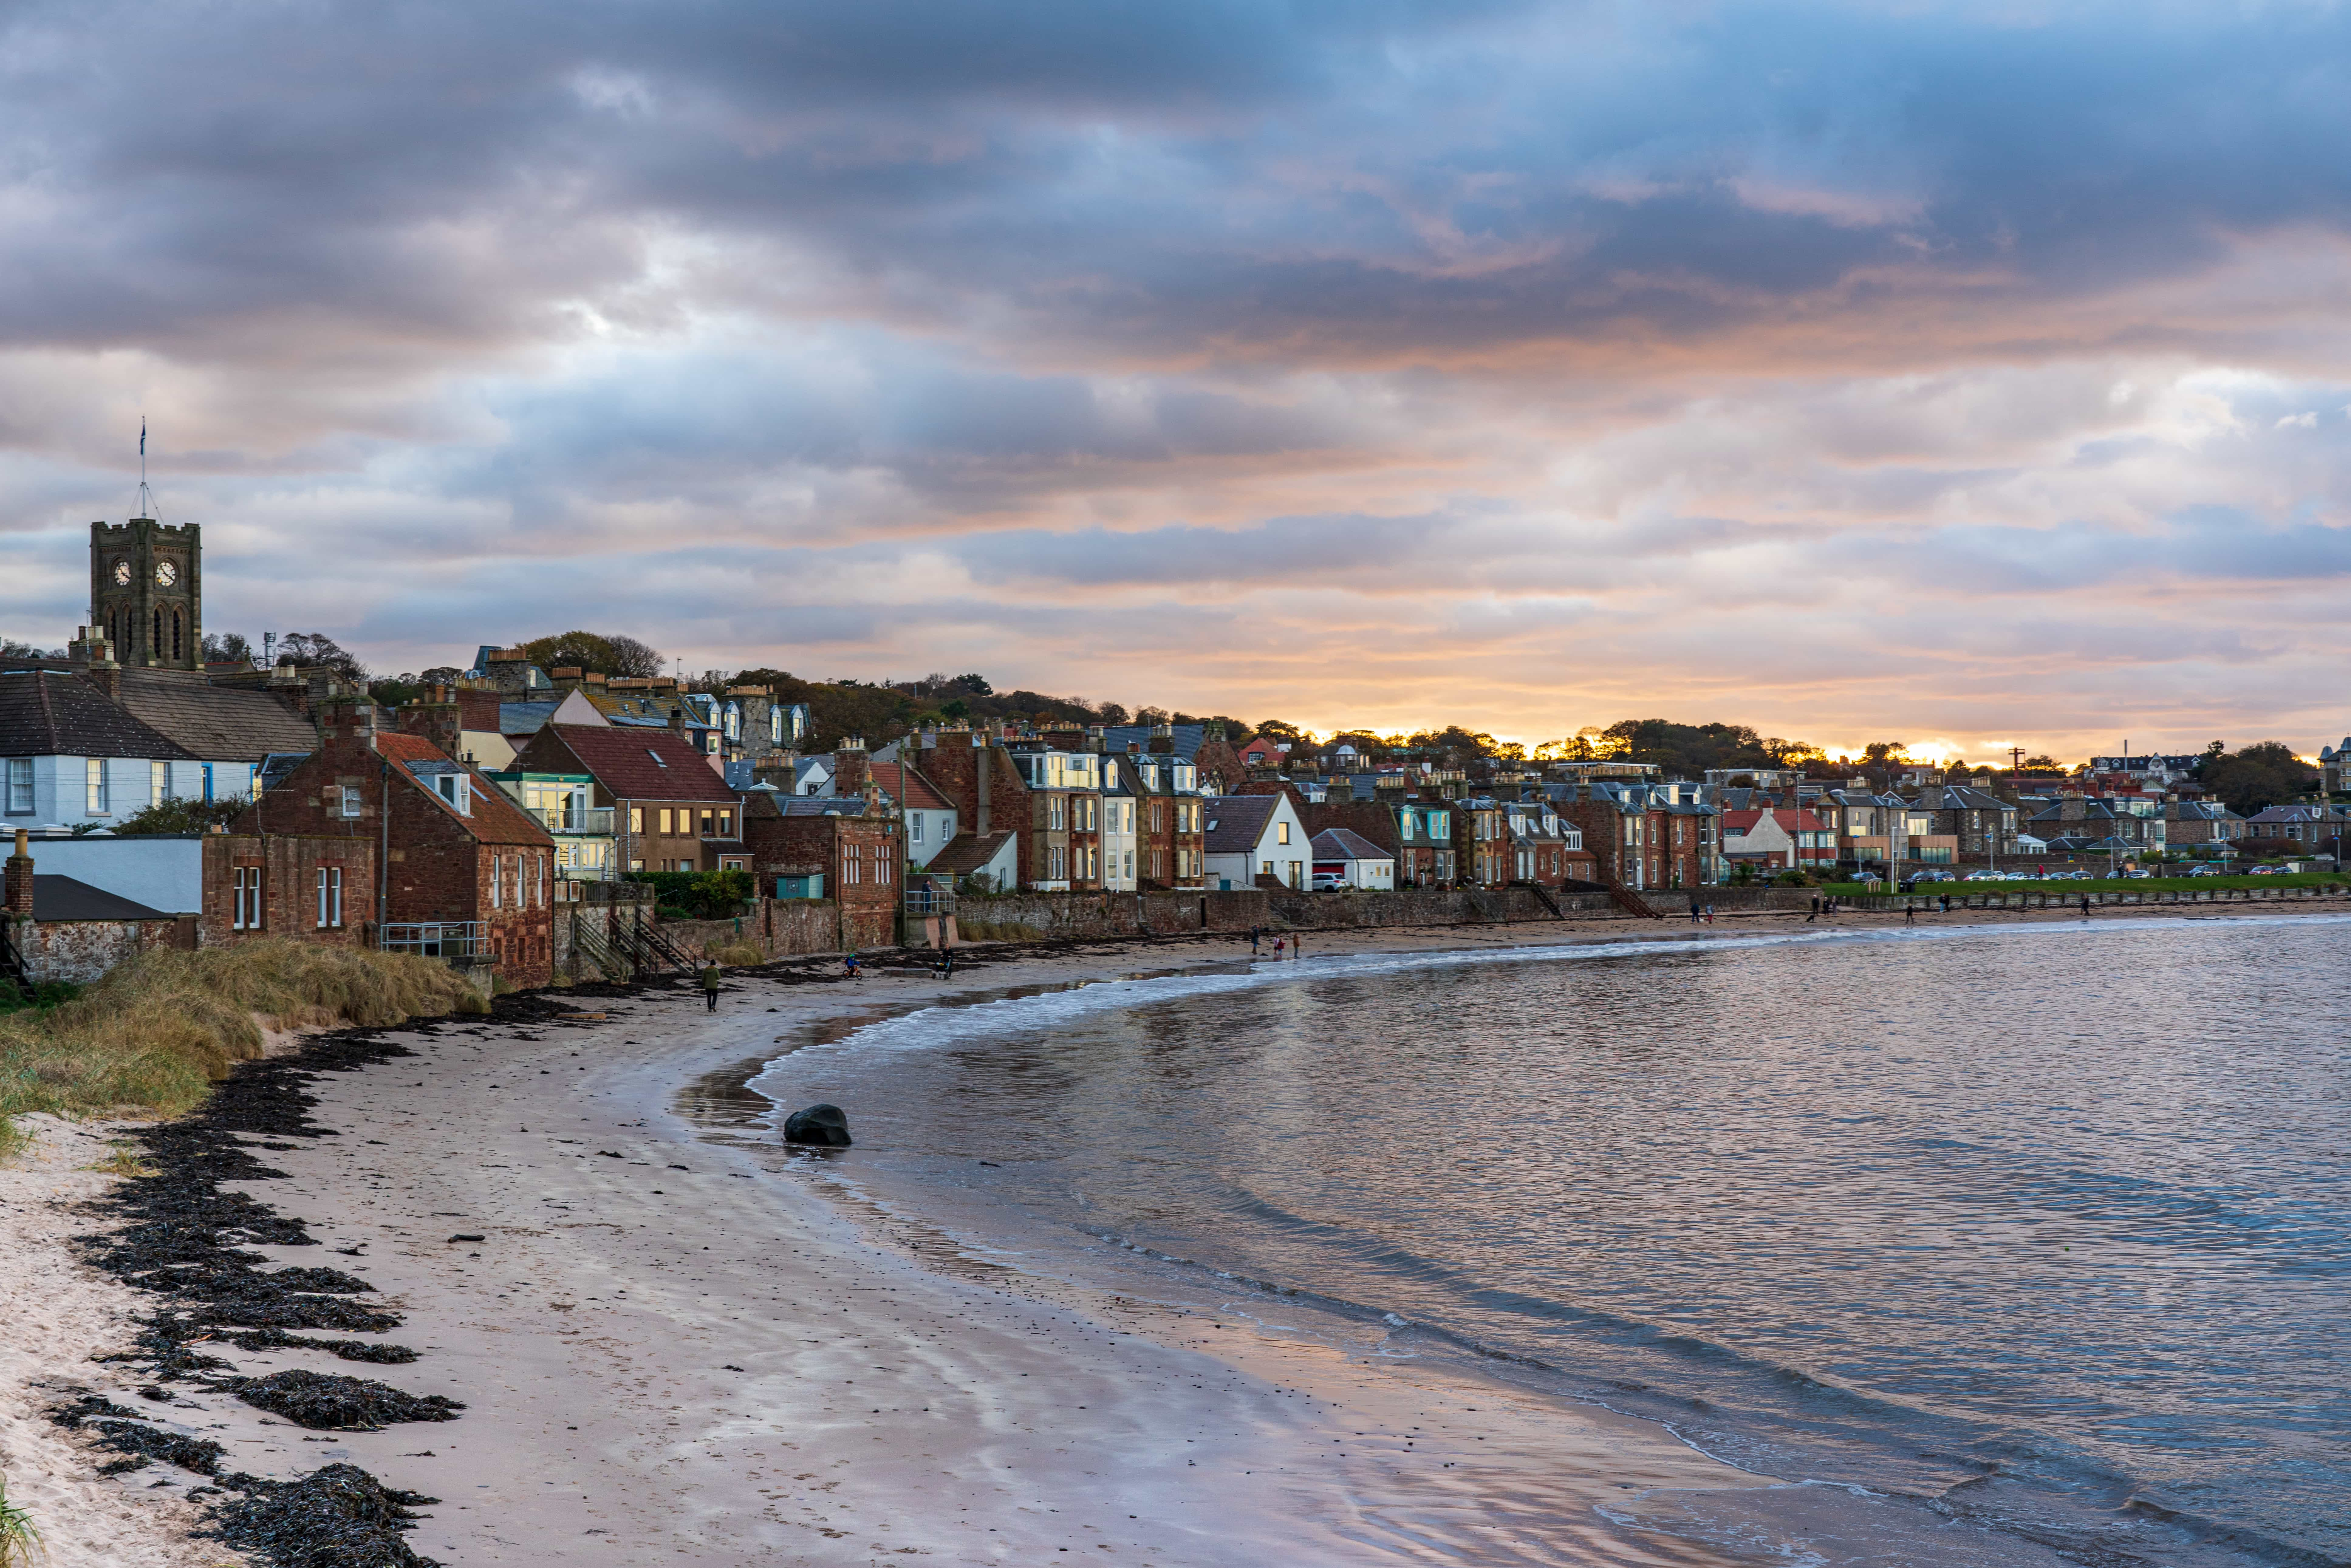 Evening at the beach in North Berwick | f/8 1/50sec ISO-200 49mm  | ILCE-7RM3